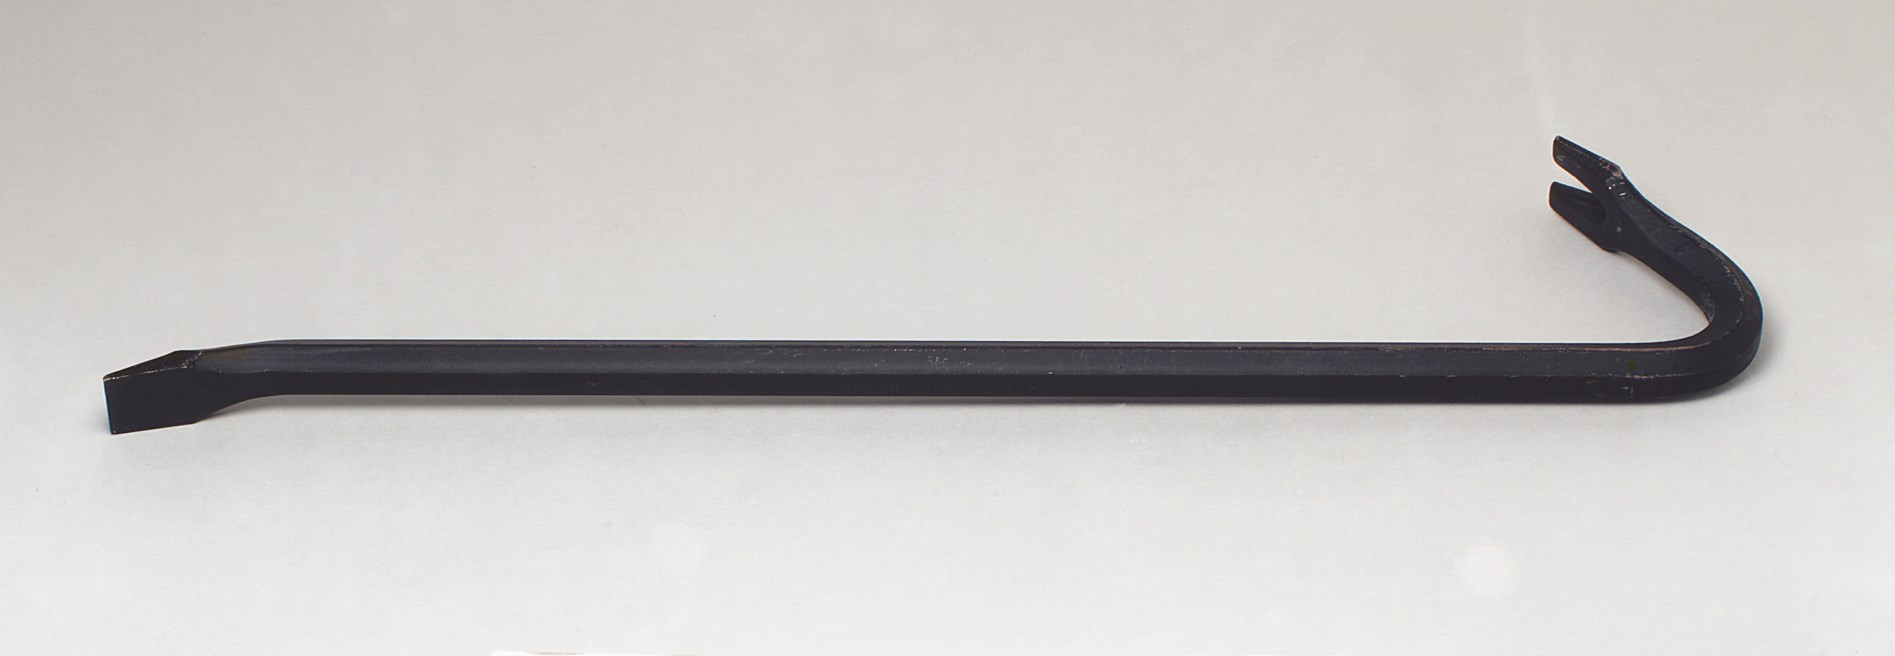 Wright Tool 9M717 3/4 inch x 36 inch (Mayhew #717/41004) Gooseneck Wrecking Bars